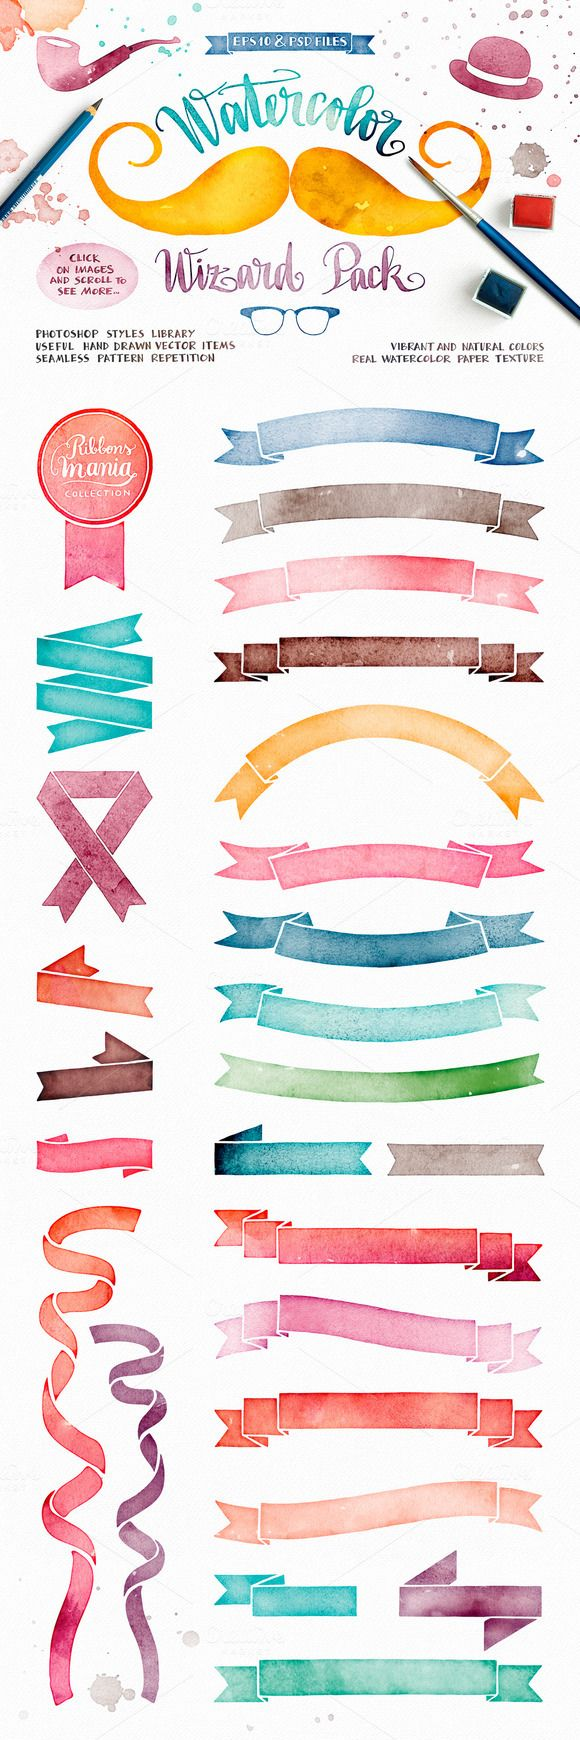 Watercolor Wizard Pack by Inkant Studio. Includes Photoshop styles, hand-drawn vectors, seamless patterns.